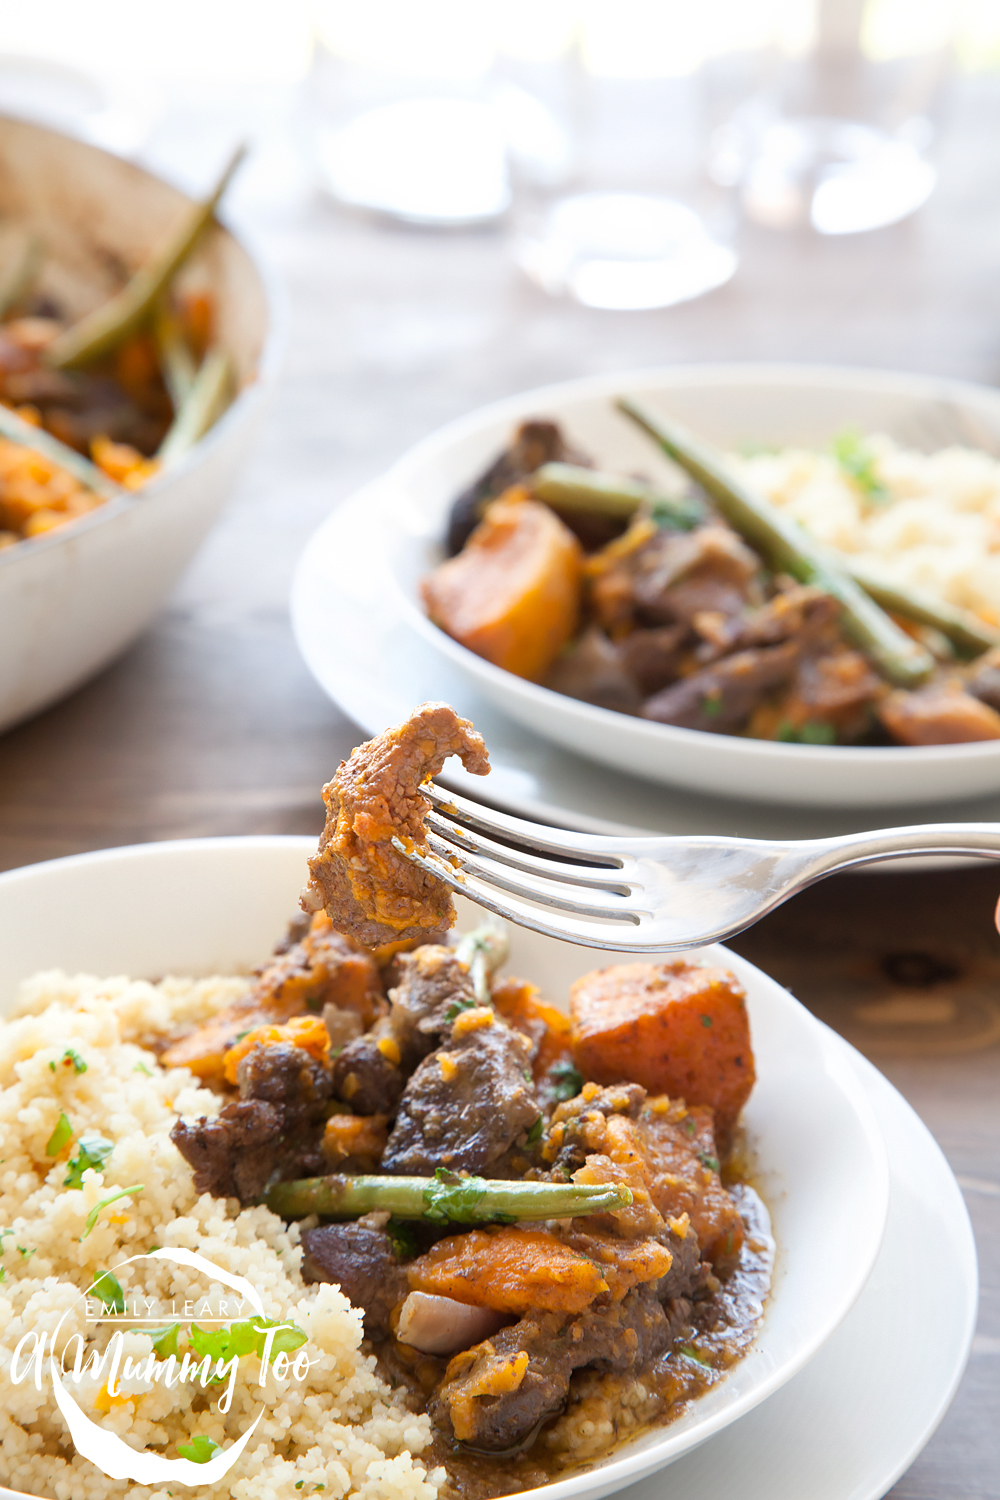 Slow cooked lamb and sweet potato casserole